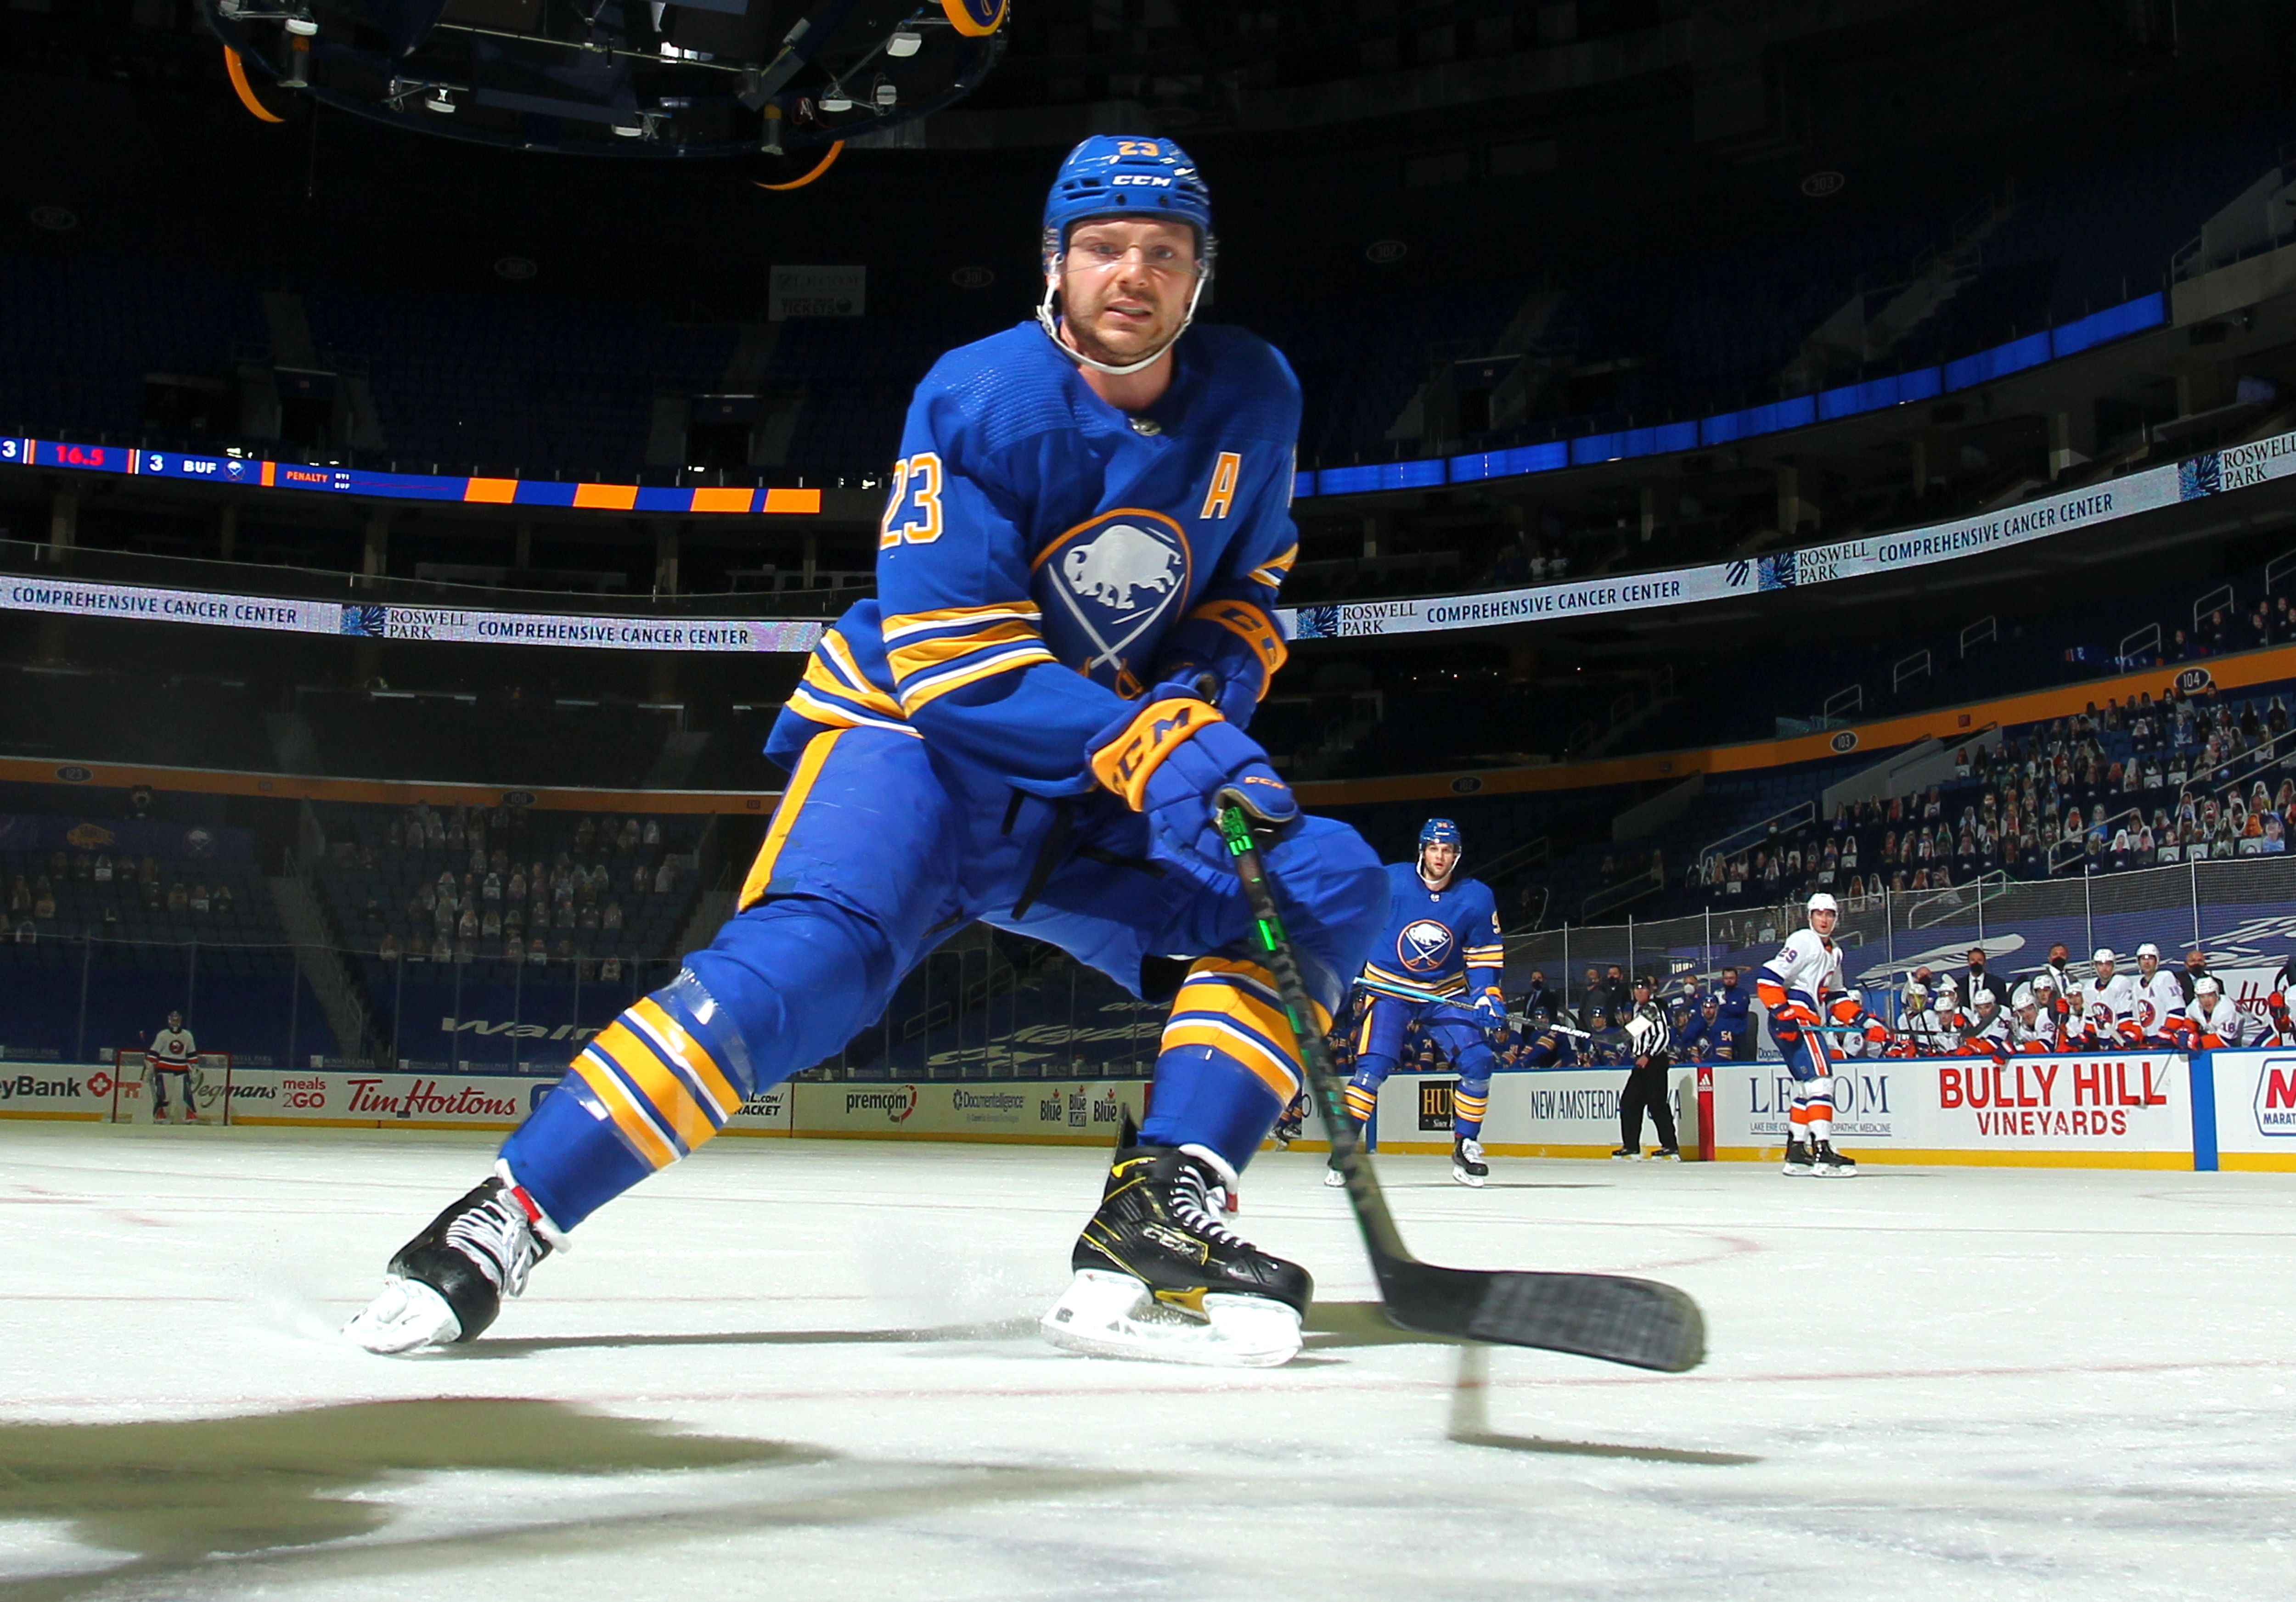 Sam Reinhart #23 of the Buffalo Sabres skates against the New York Islanders during an NHL game on May 4, 2021 at KeyBank Center in Buffalo, New York.